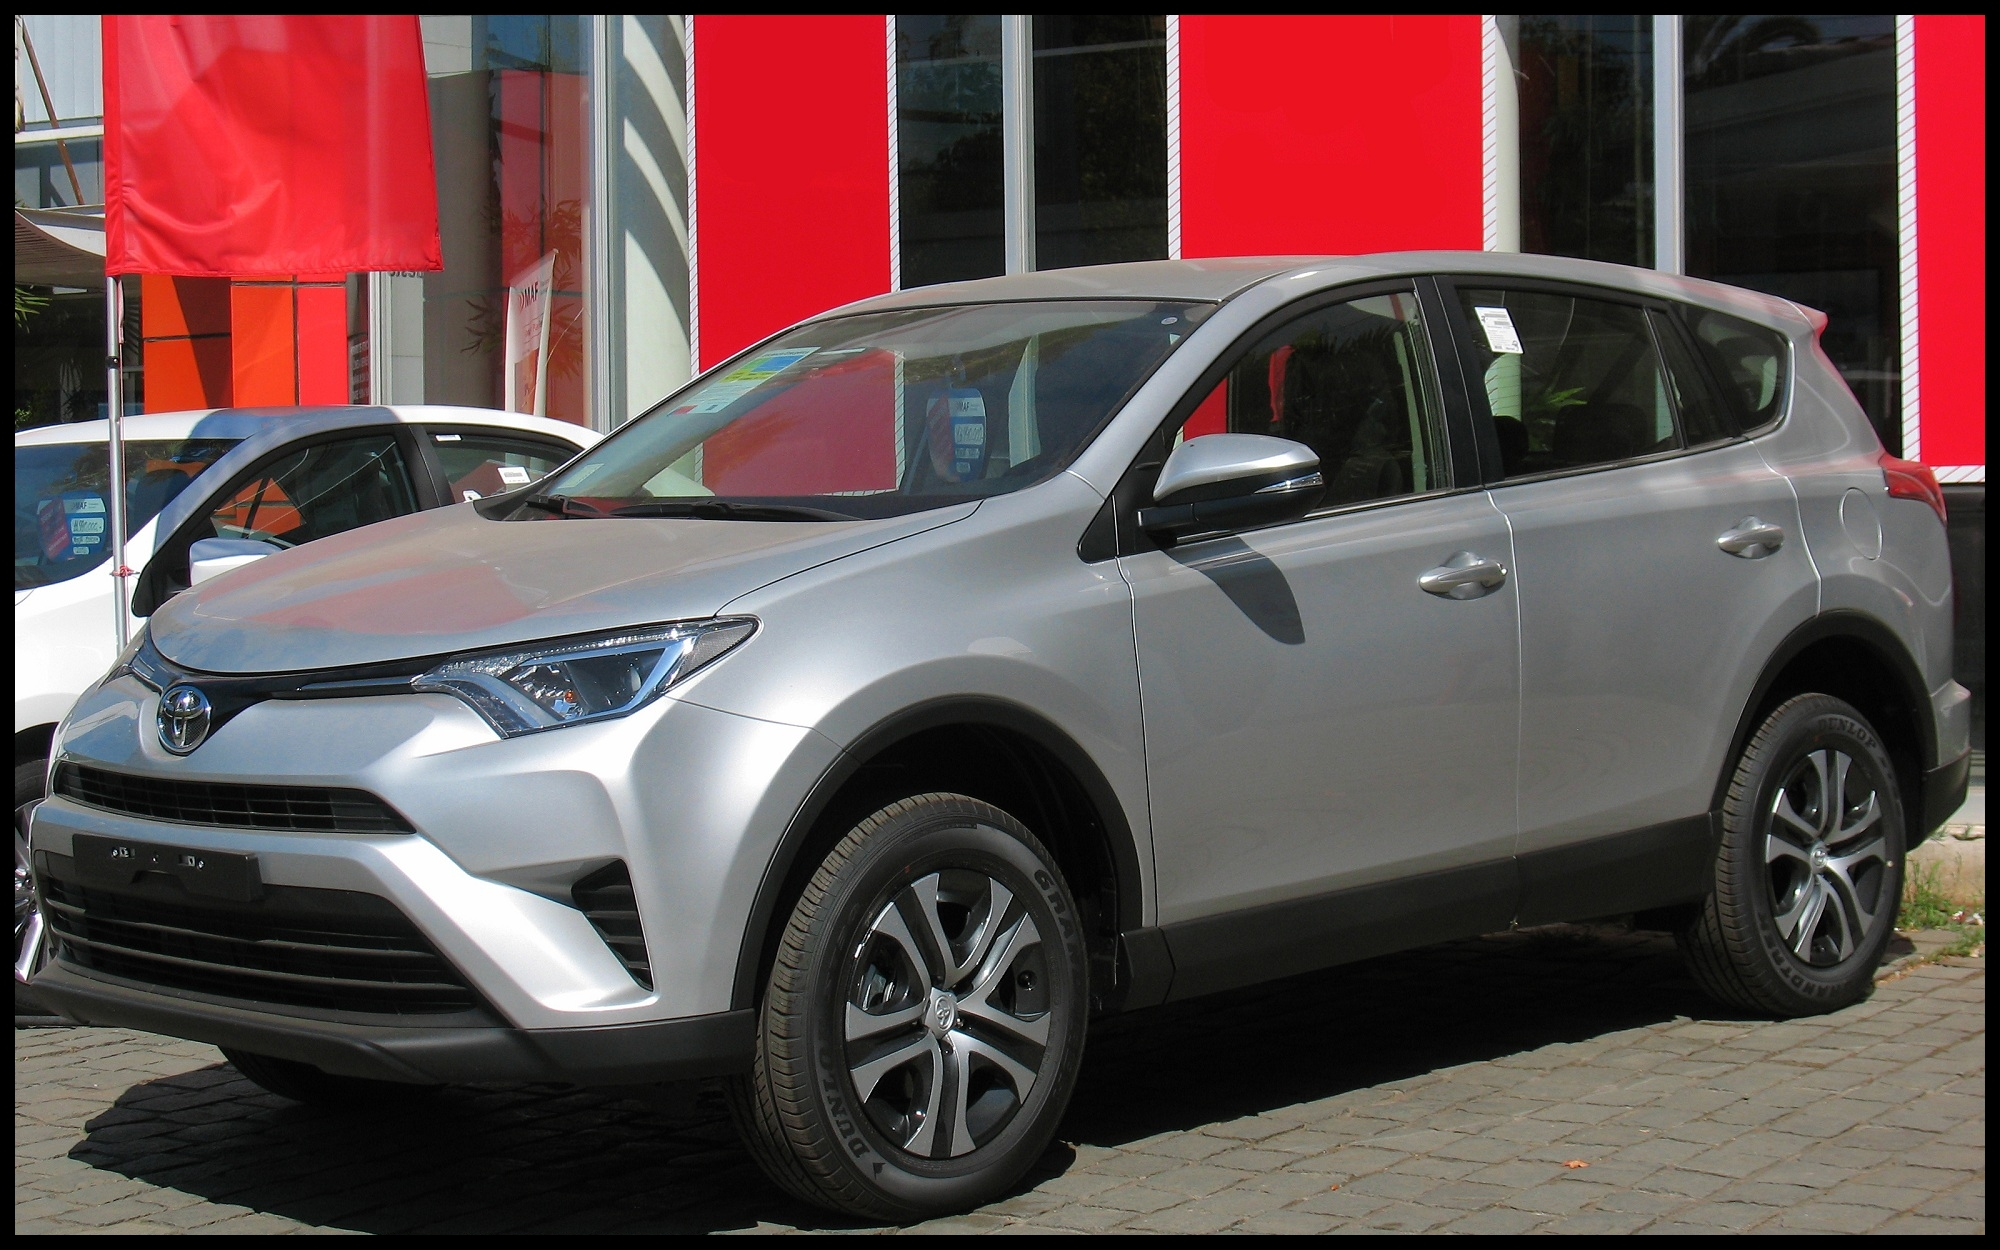 paring used Japanese Toyota RAV4 models All About Japanese Cars